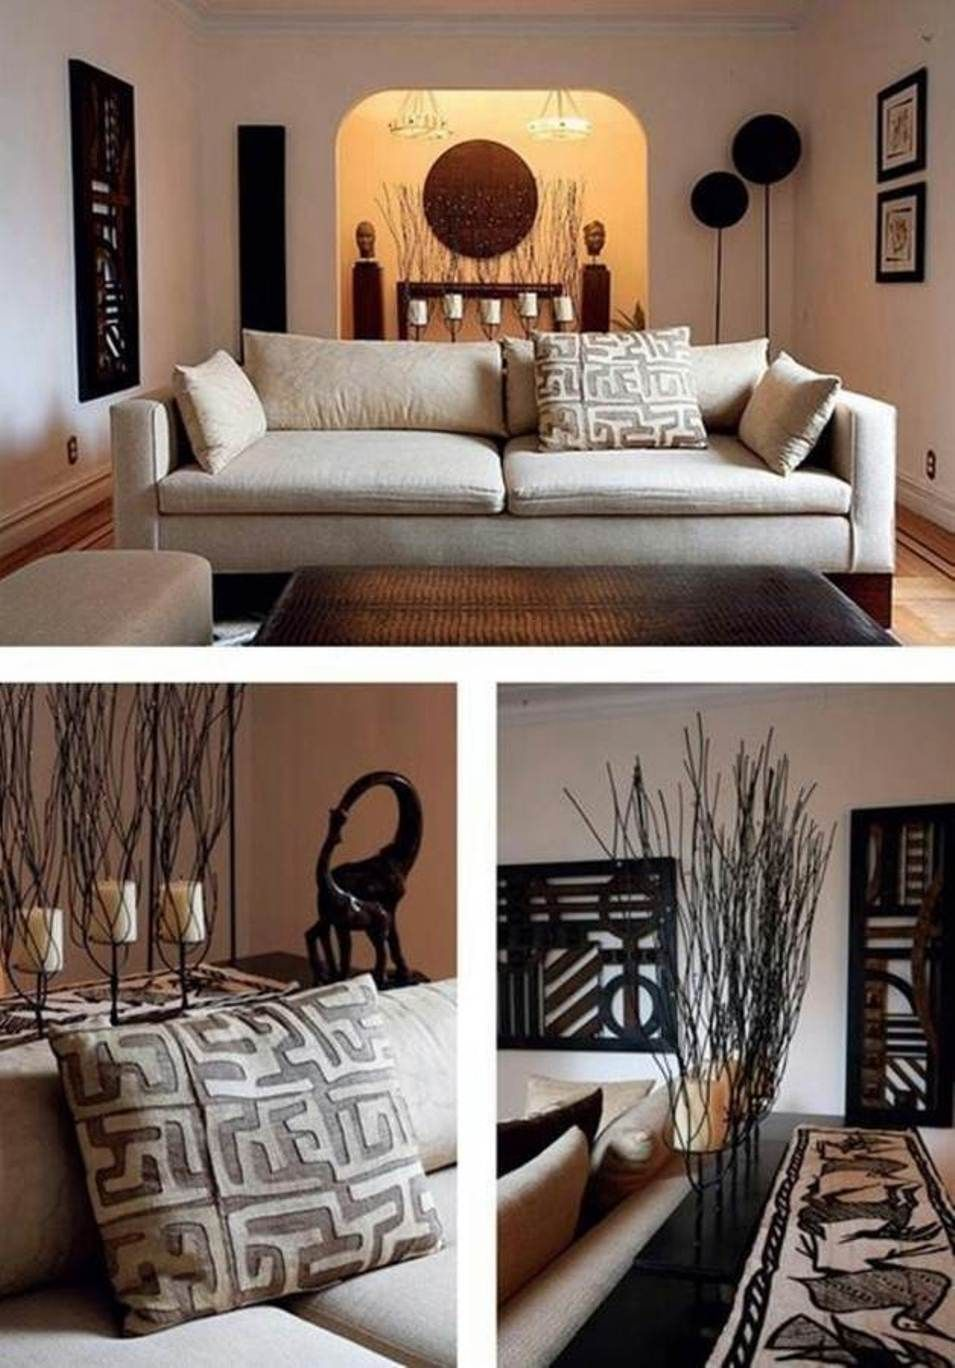 404 Not Found African Living Rooms African Decor Living Room African Interior